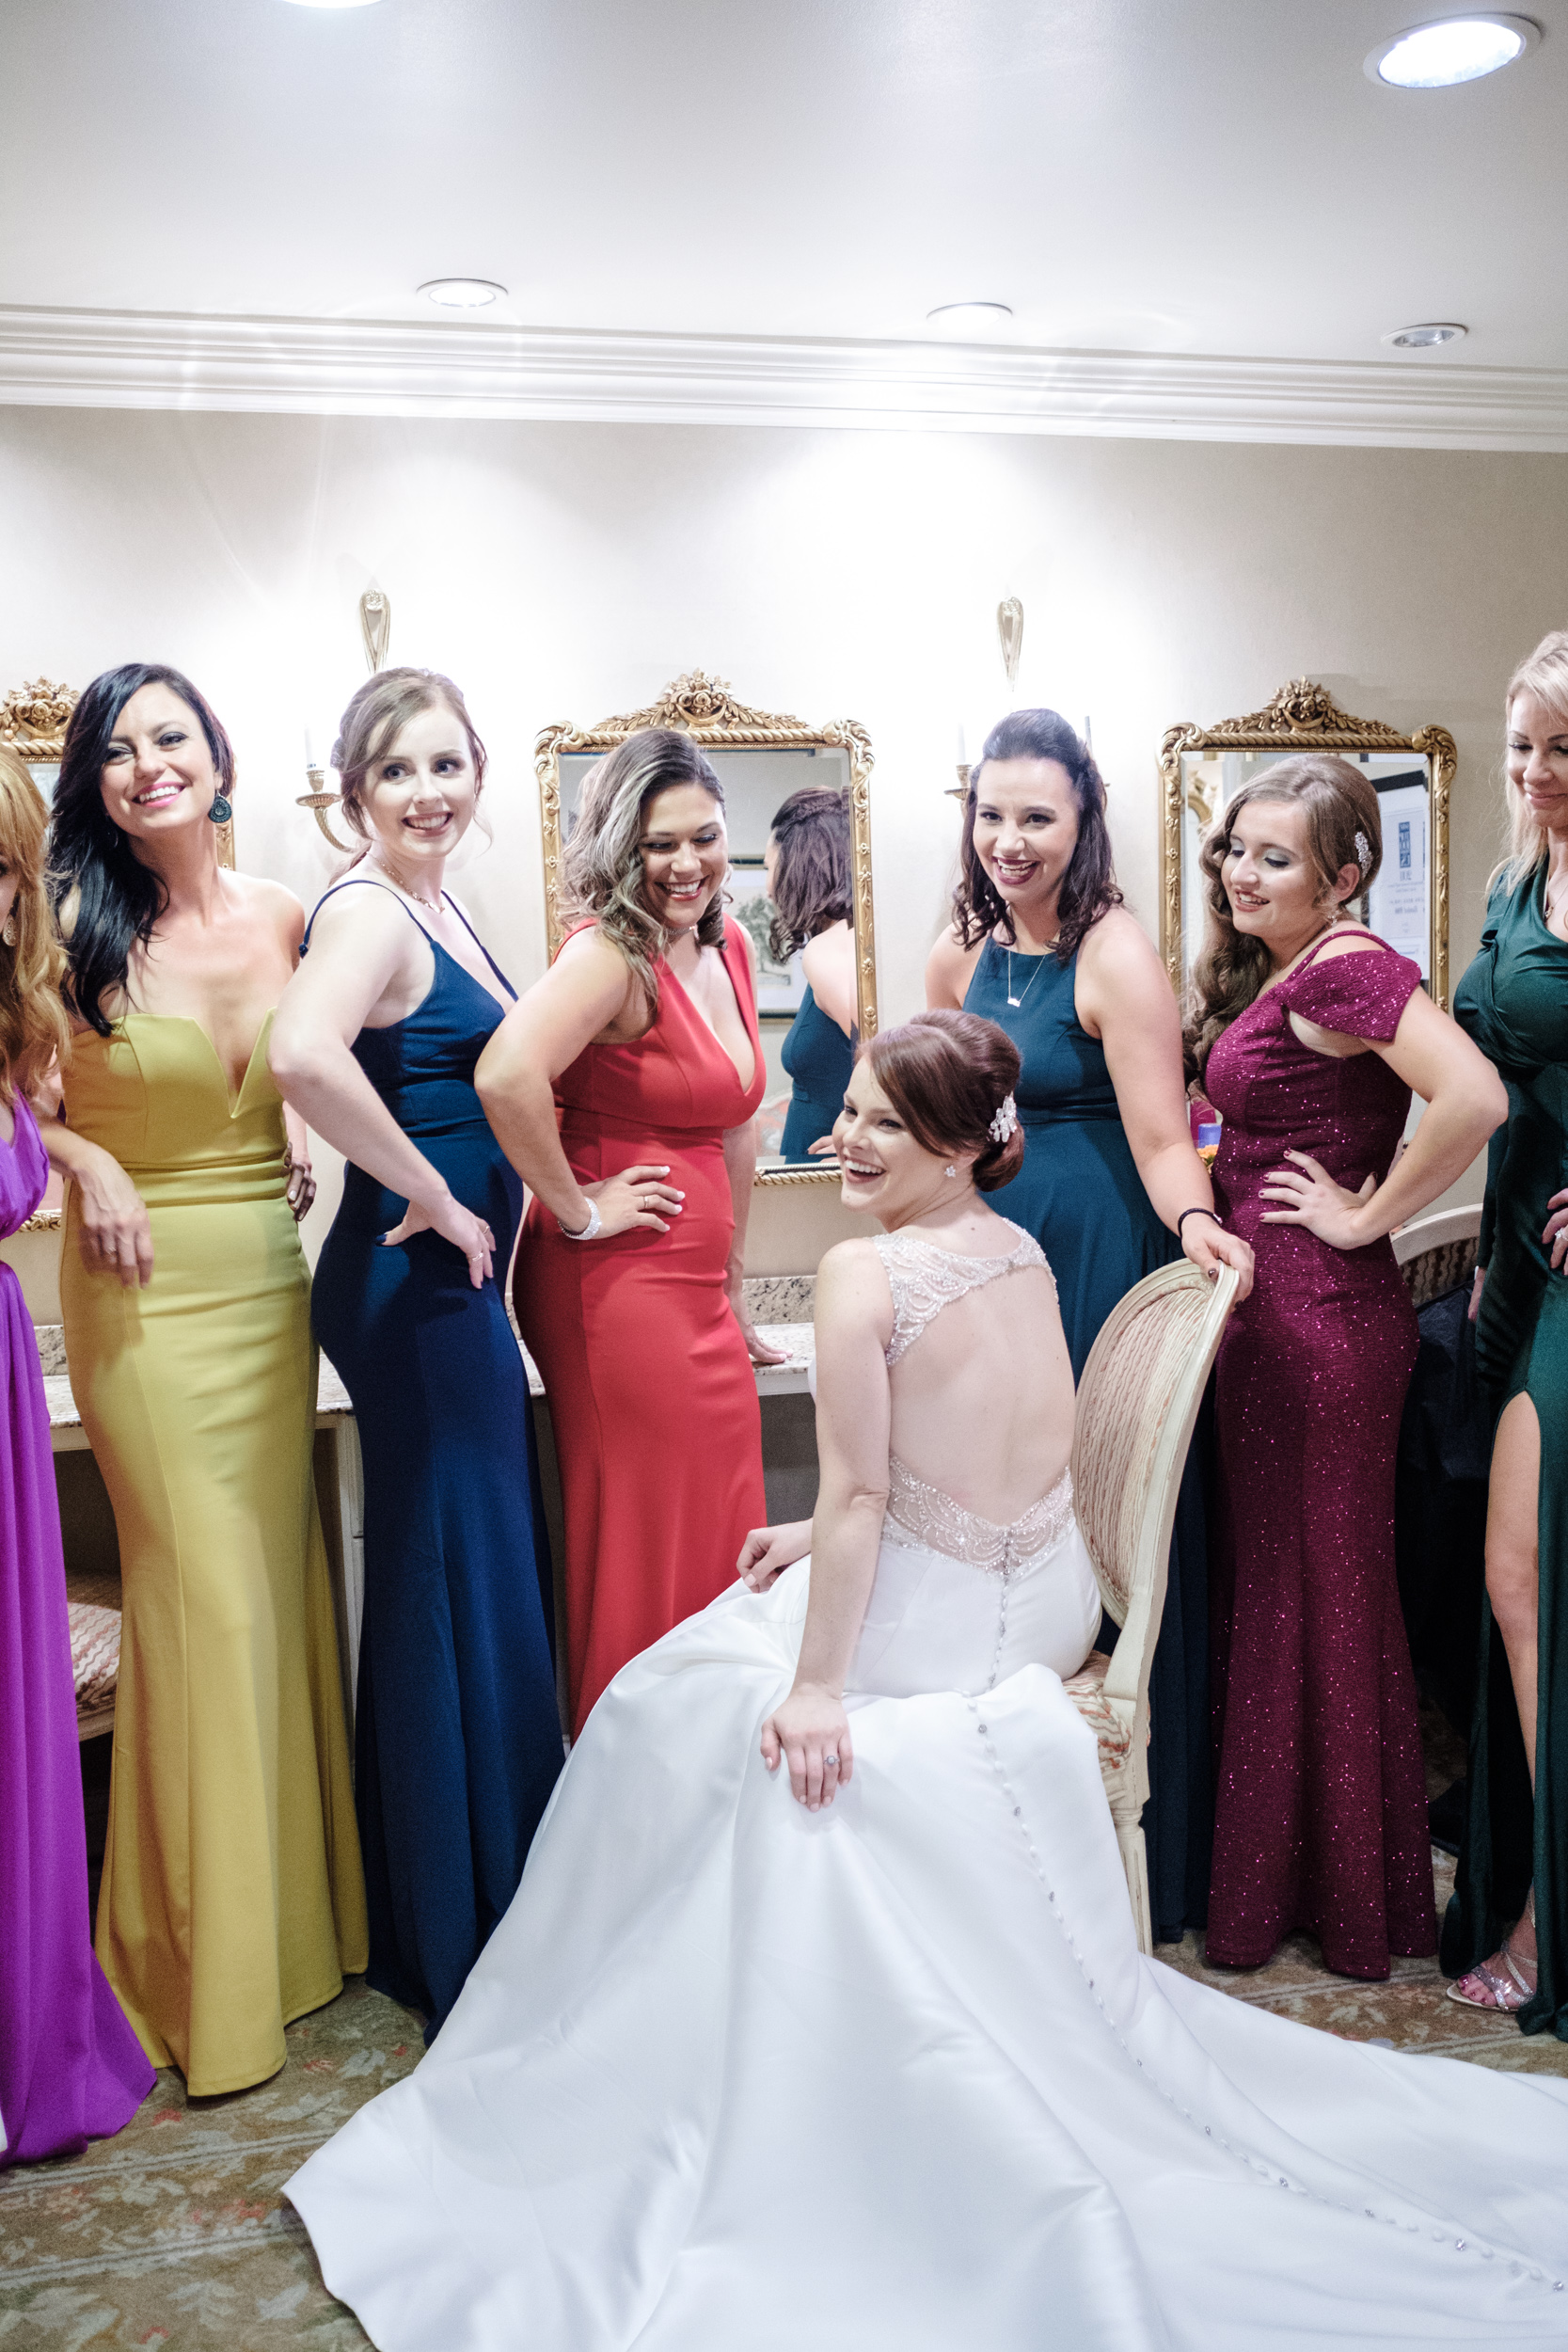 12 bridesmaids with different color dresses for cog hill wedding